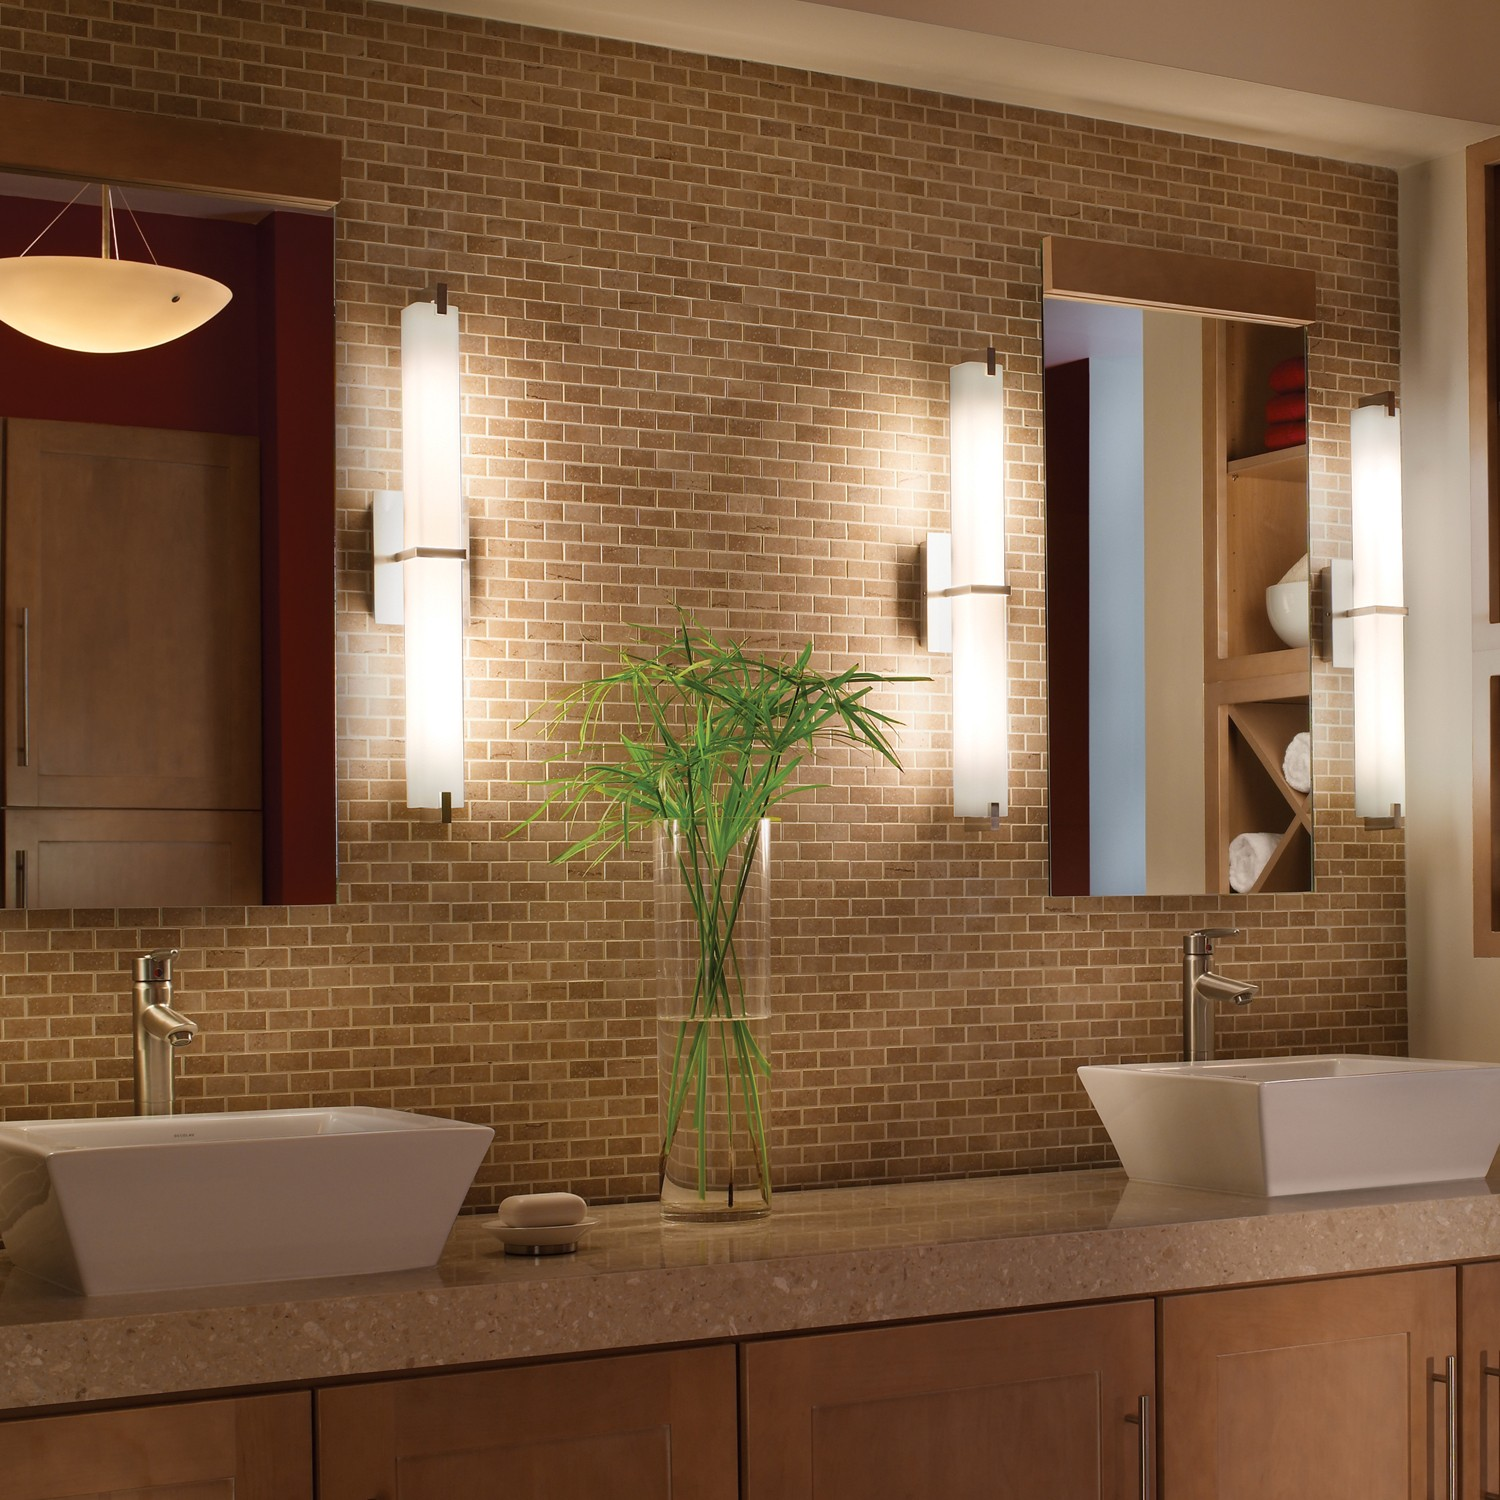 Bathroom Lights Side Of Mirror how to light a bathroom vanity | design necessities lighting